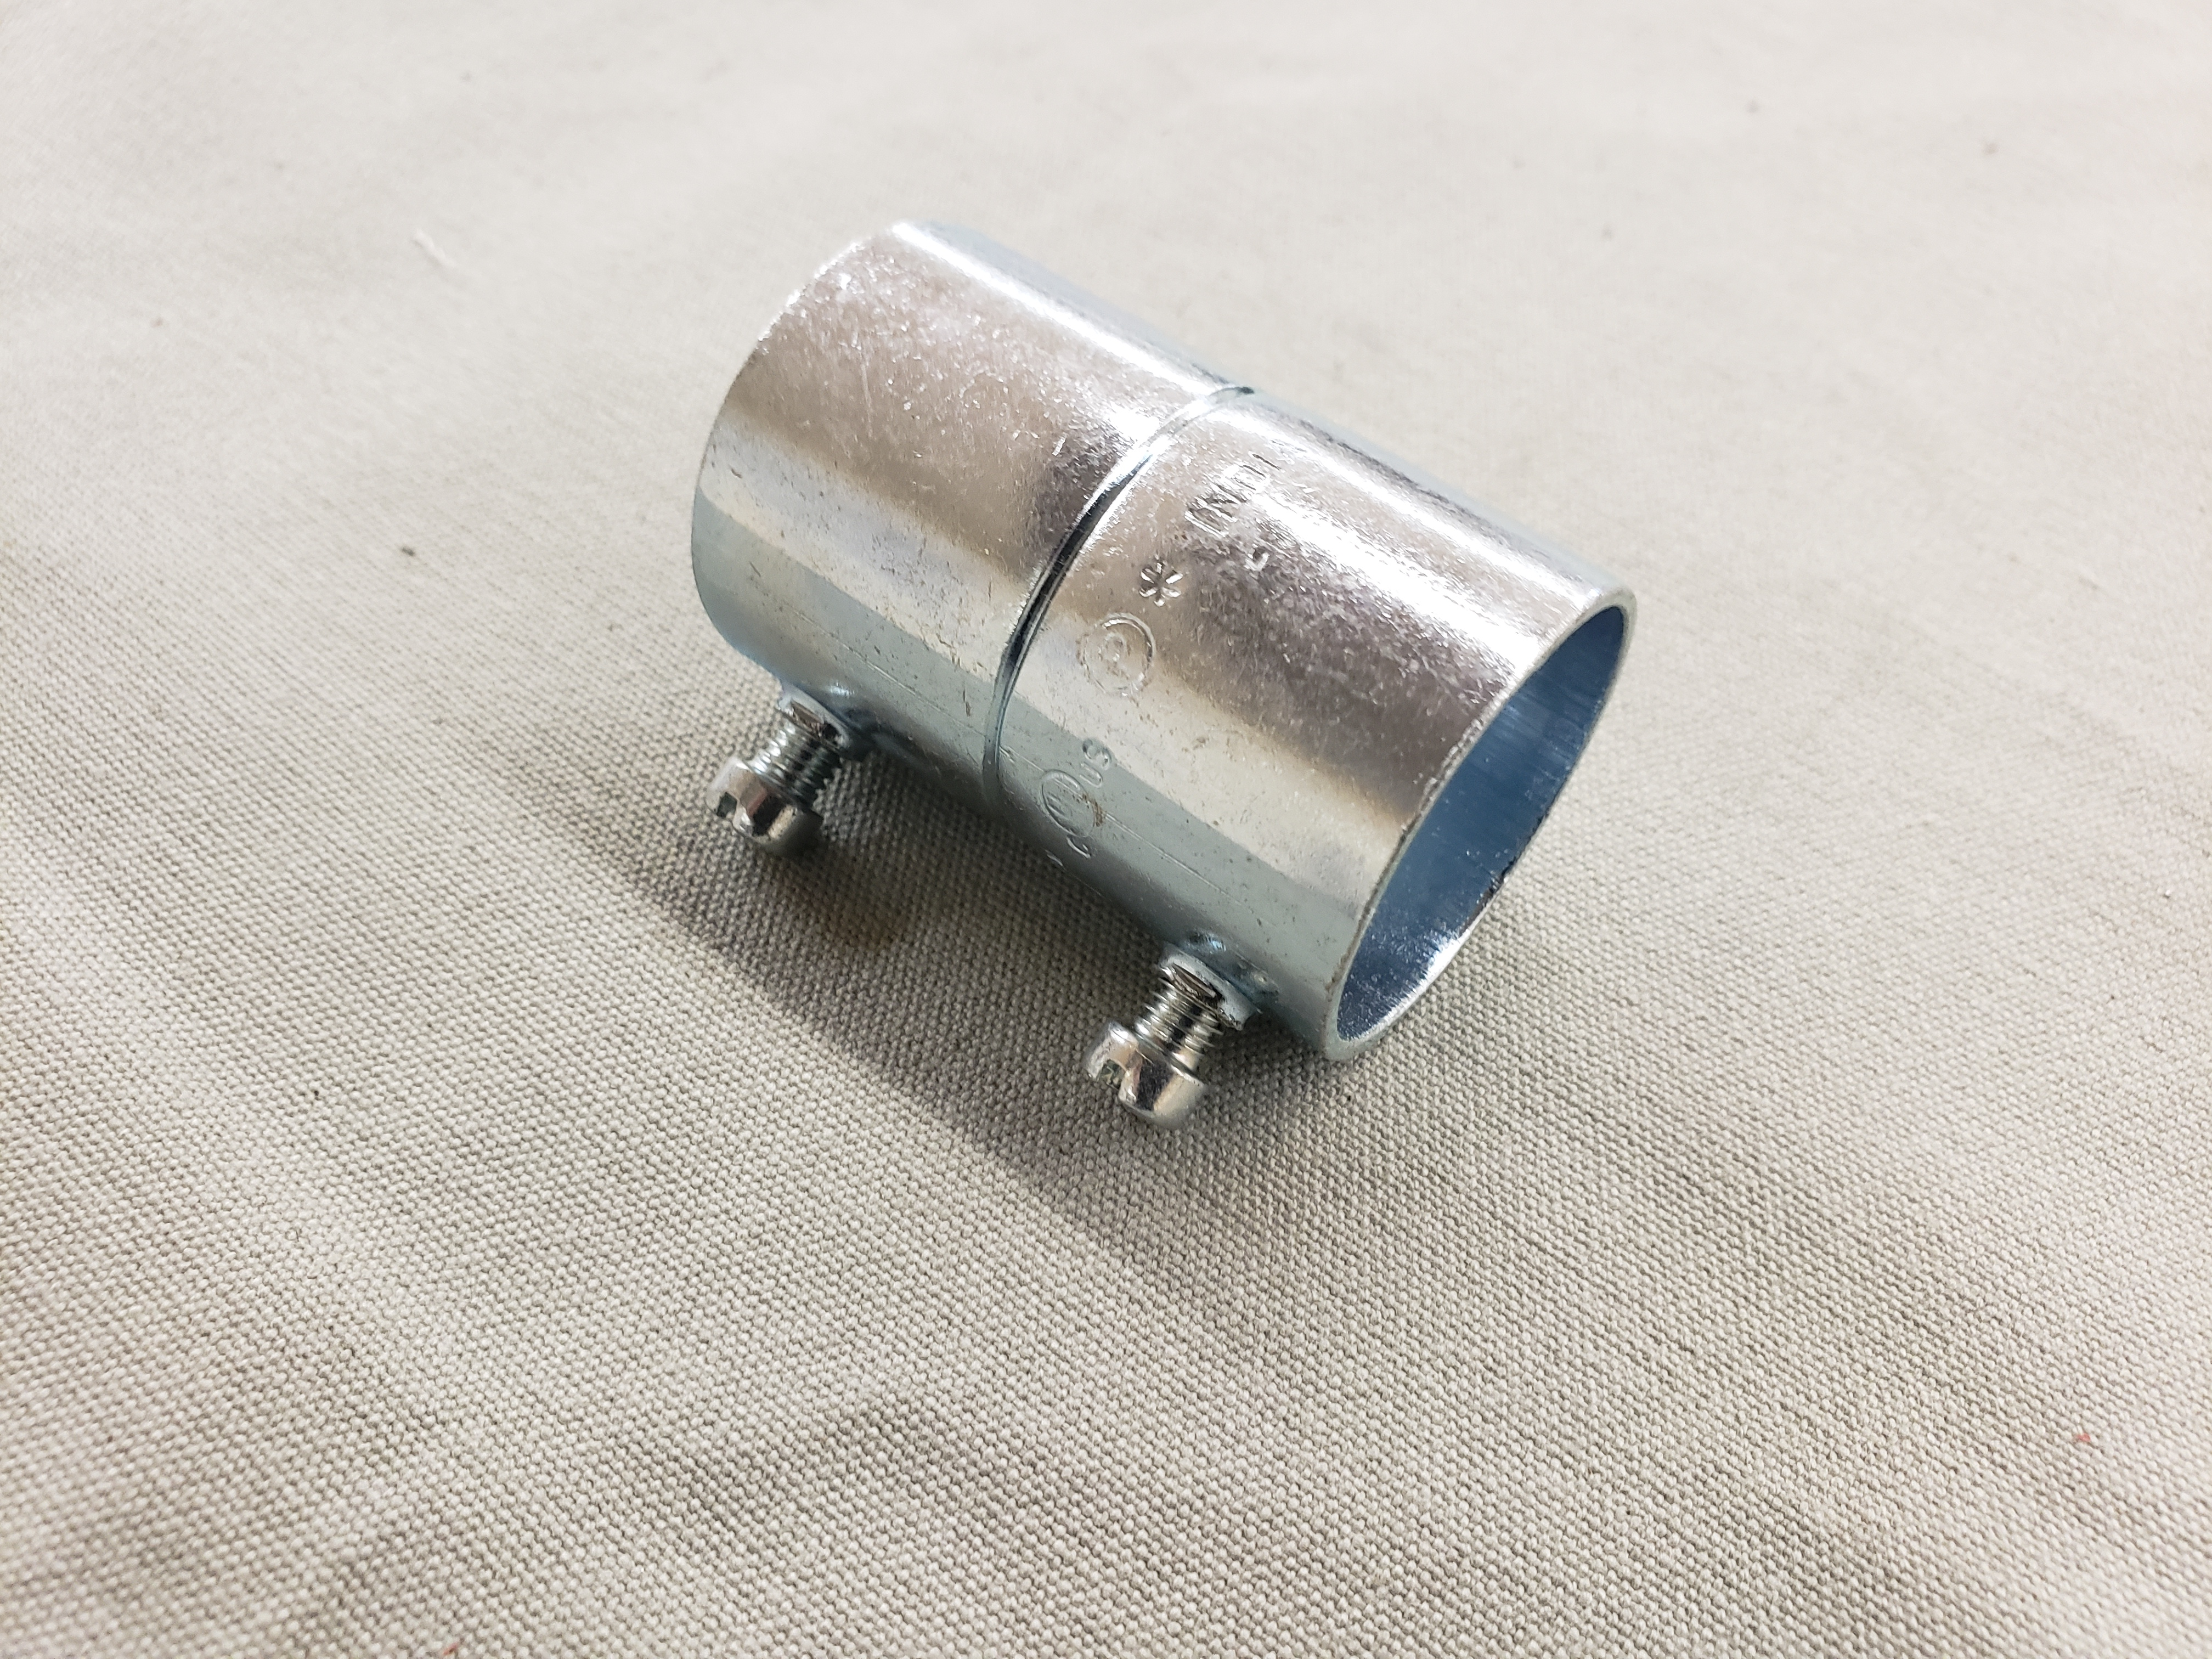 $10.00 includes 4 conduit connectors used to attach leg  exstension or ridges.